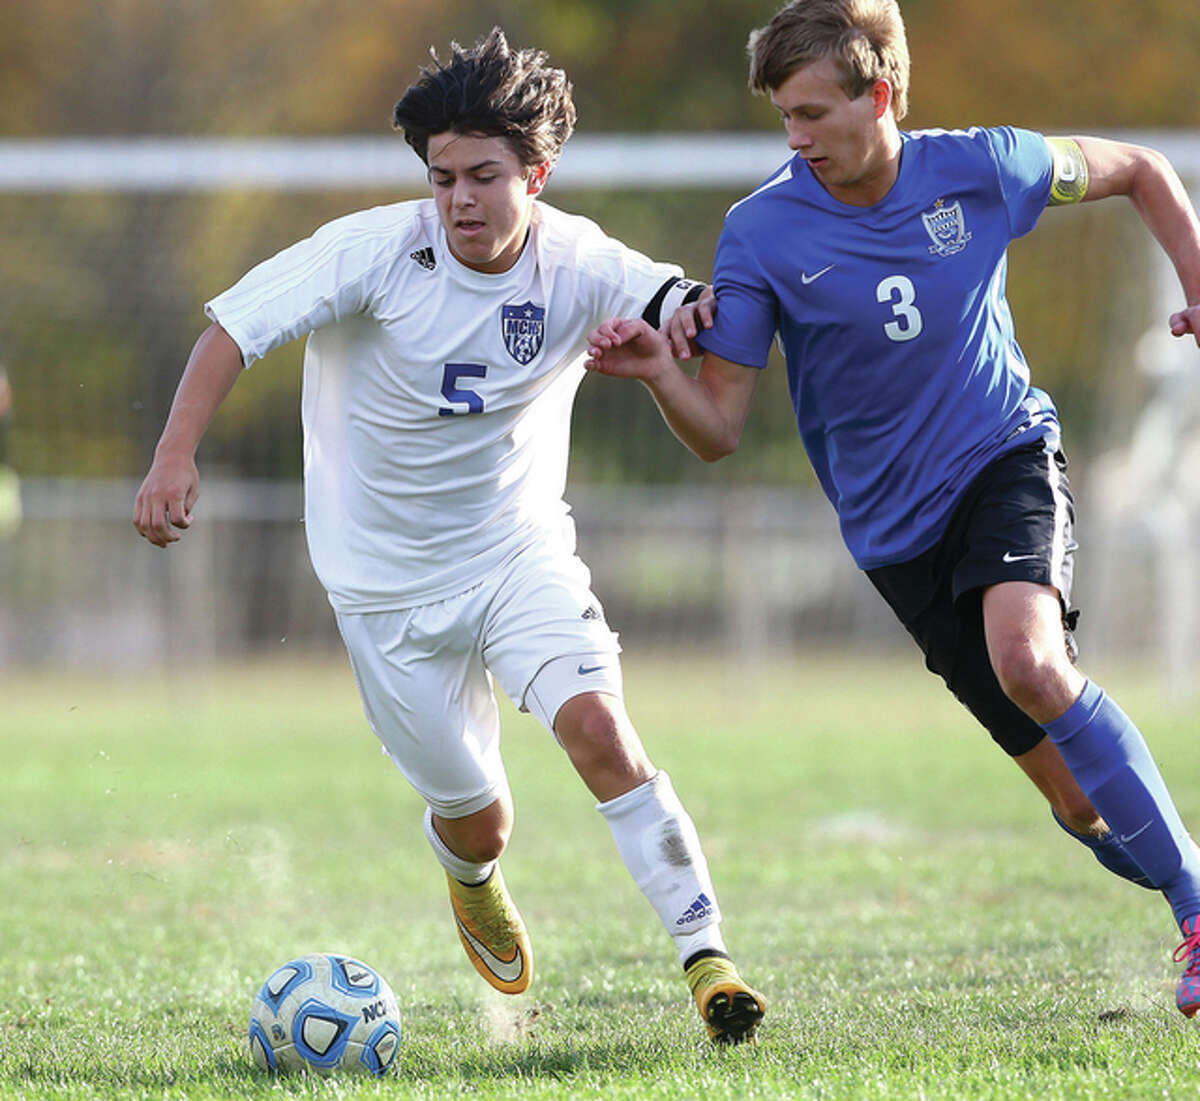 Marquette Explorers forward Zach Weinman, left, scored a pair of goals in his team's 8-0 victory over Roxana Tuesday.